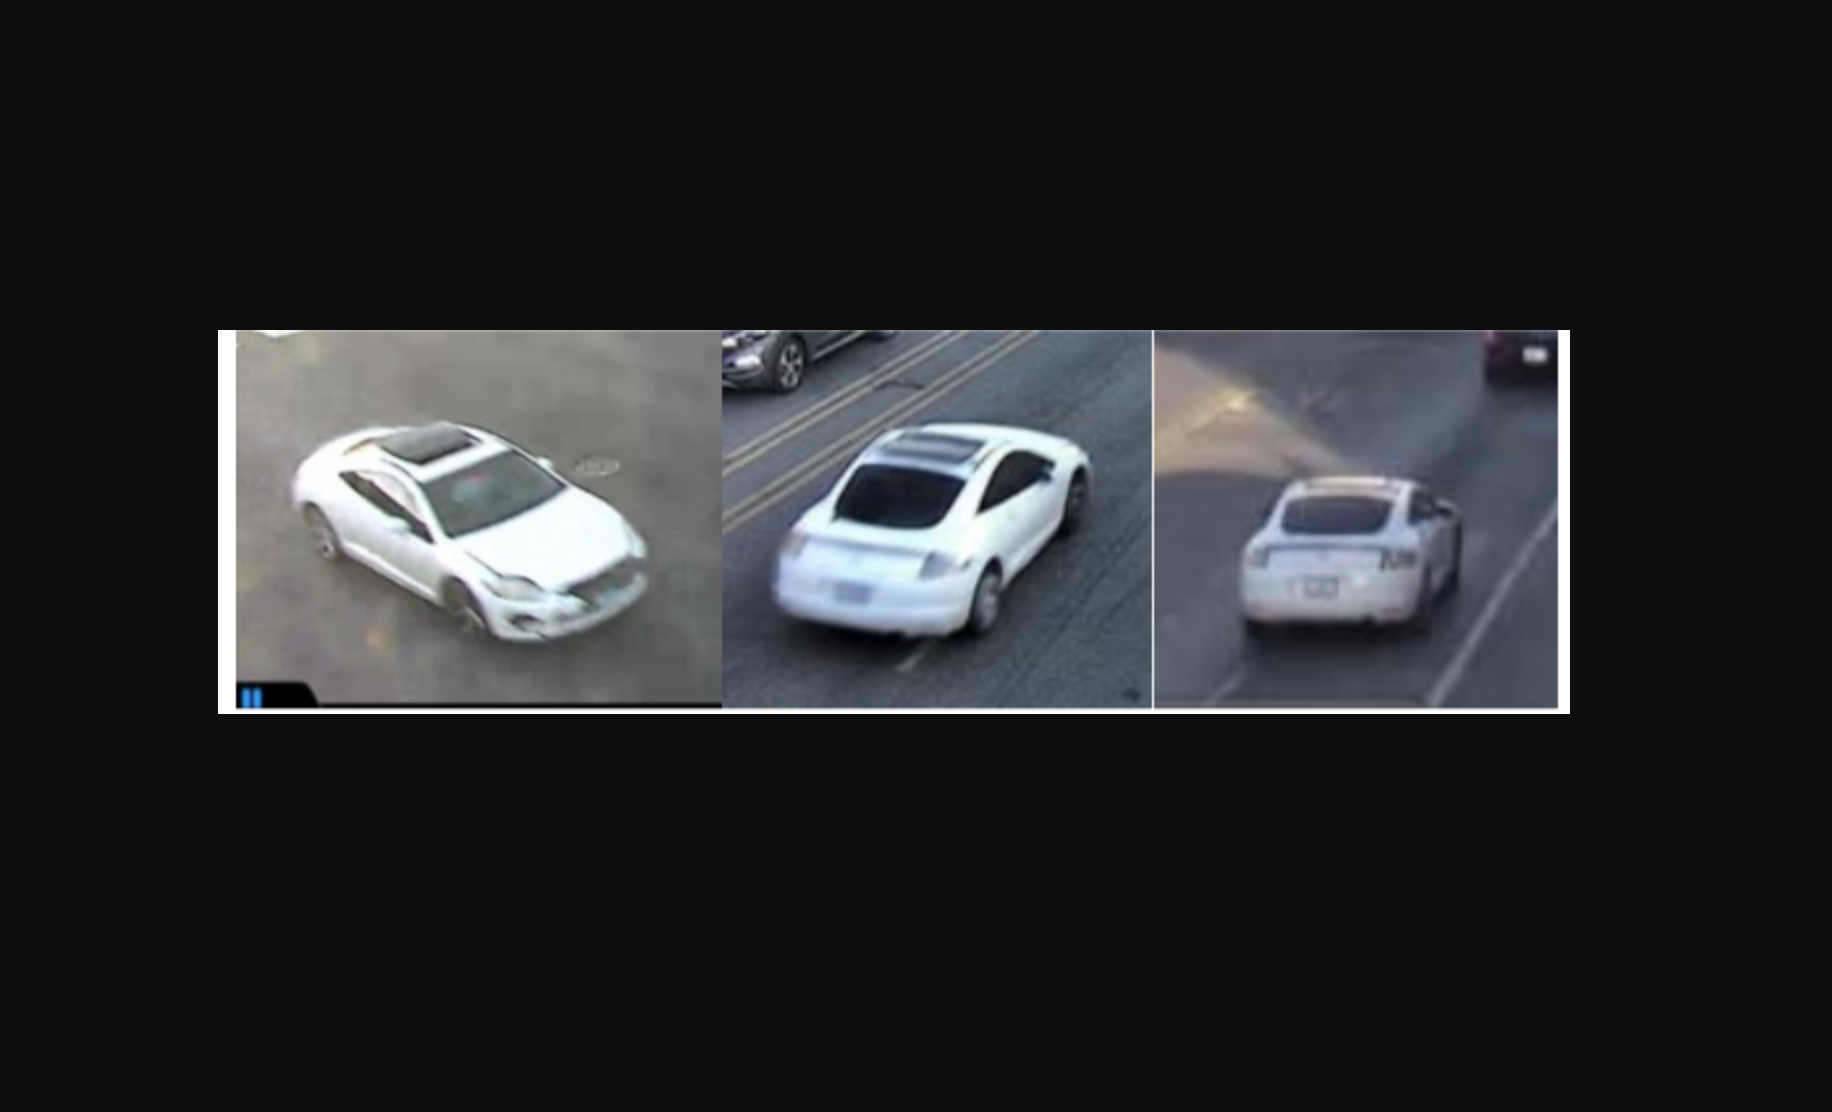 Police are searching for a vehicle involved in a hit-and-run crash Oct. 19., 2021 in Chicago Lawn.